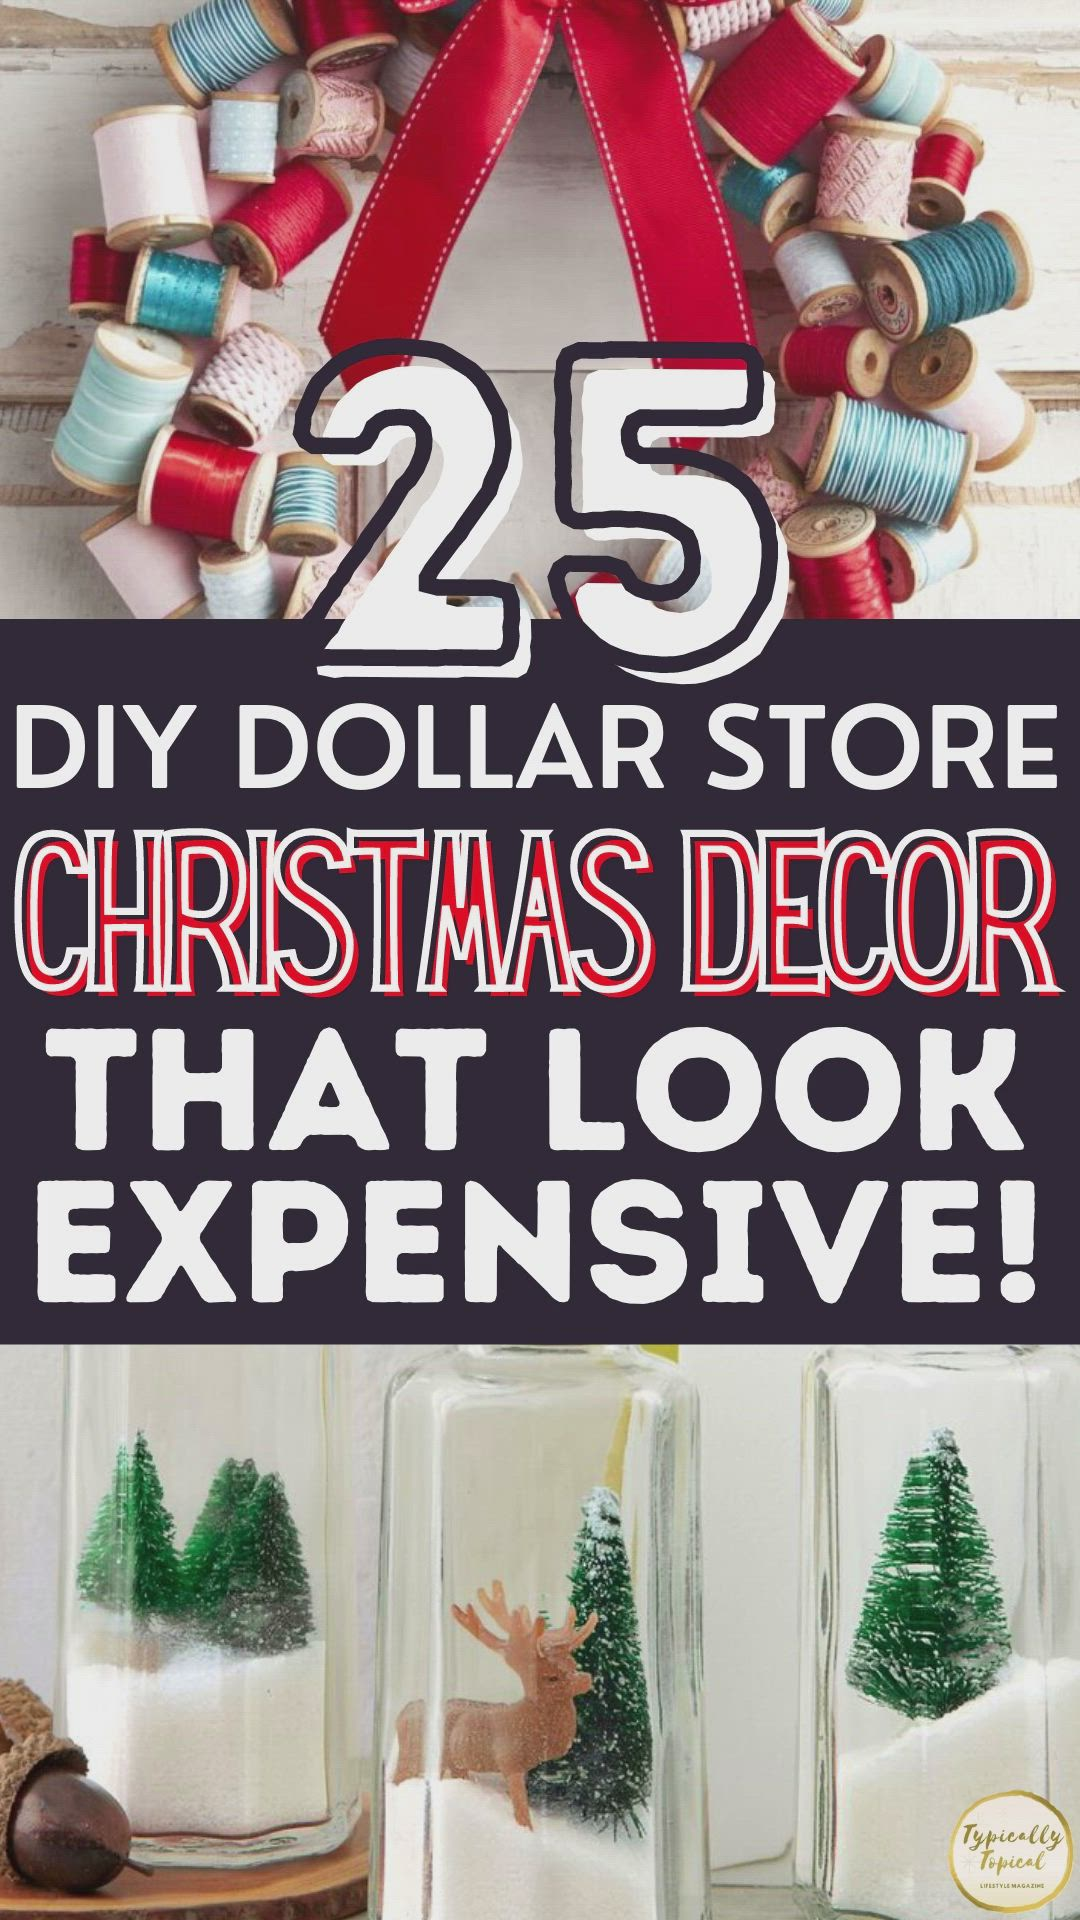 29 Cheap Christmas Dollar Store Decor Ideas That Look Amazing Typically Topical Video Video Christmas Decor Diy Christmas Diy Dollar Store Christmas